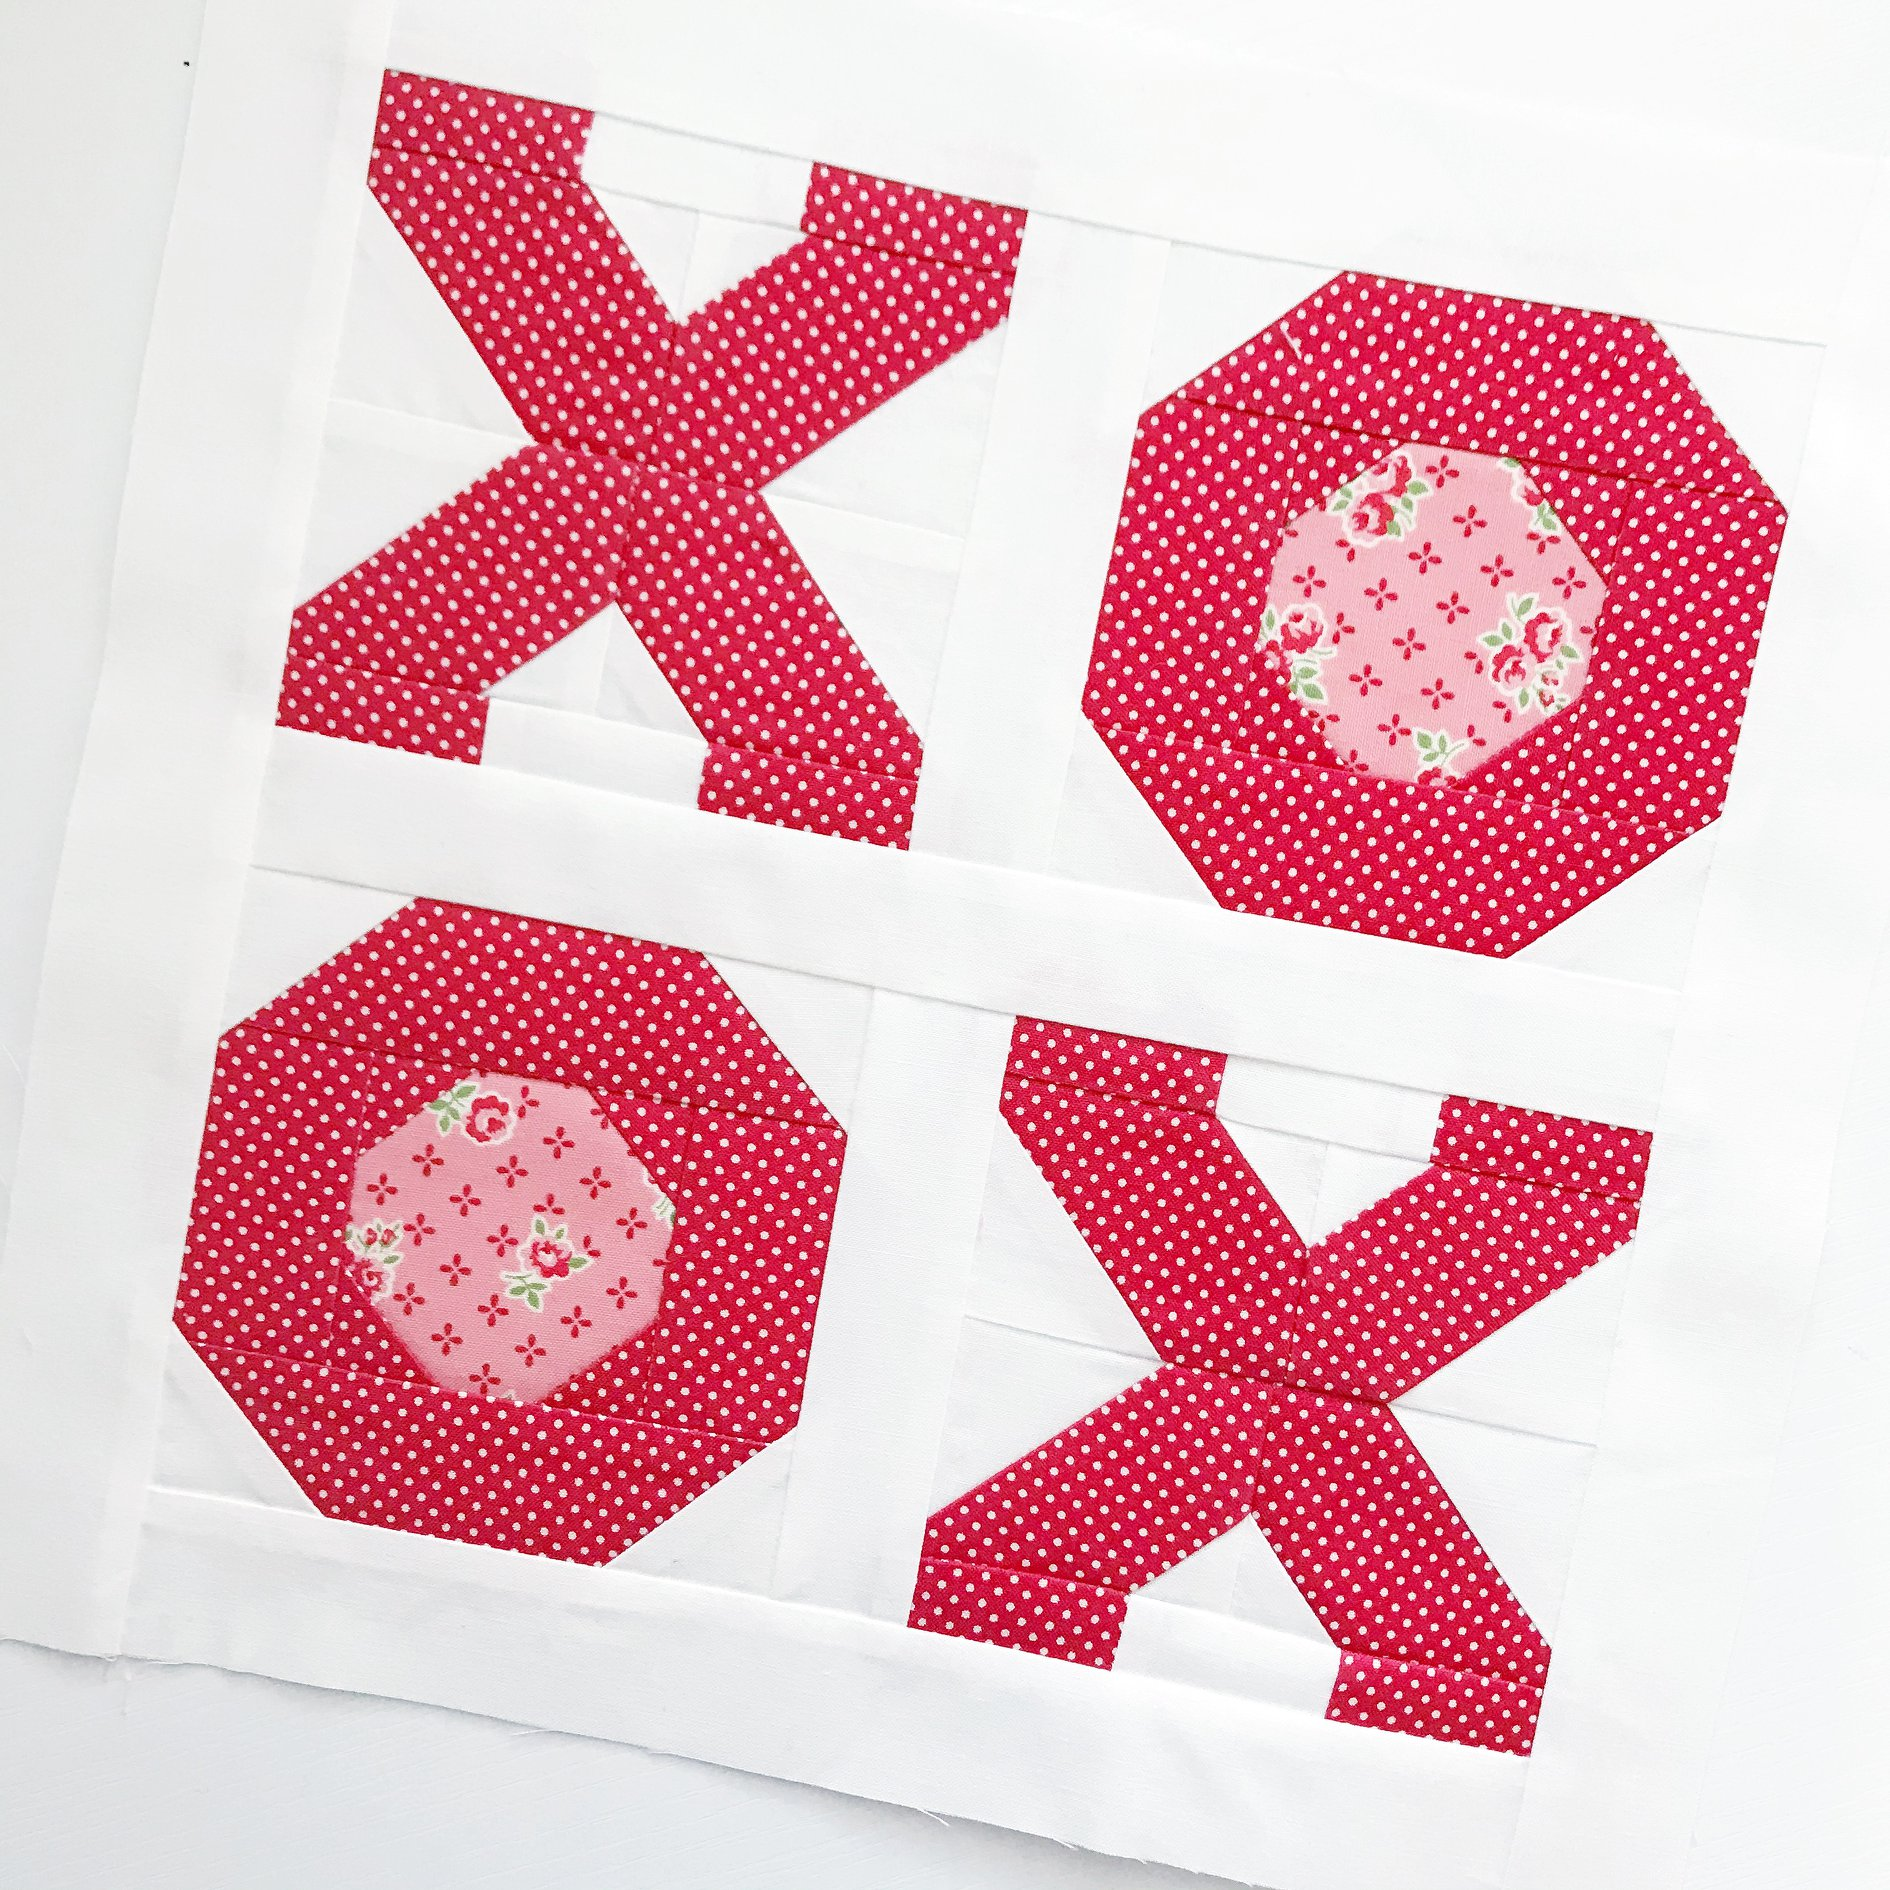 XOXO Mini Quilt and Pillow